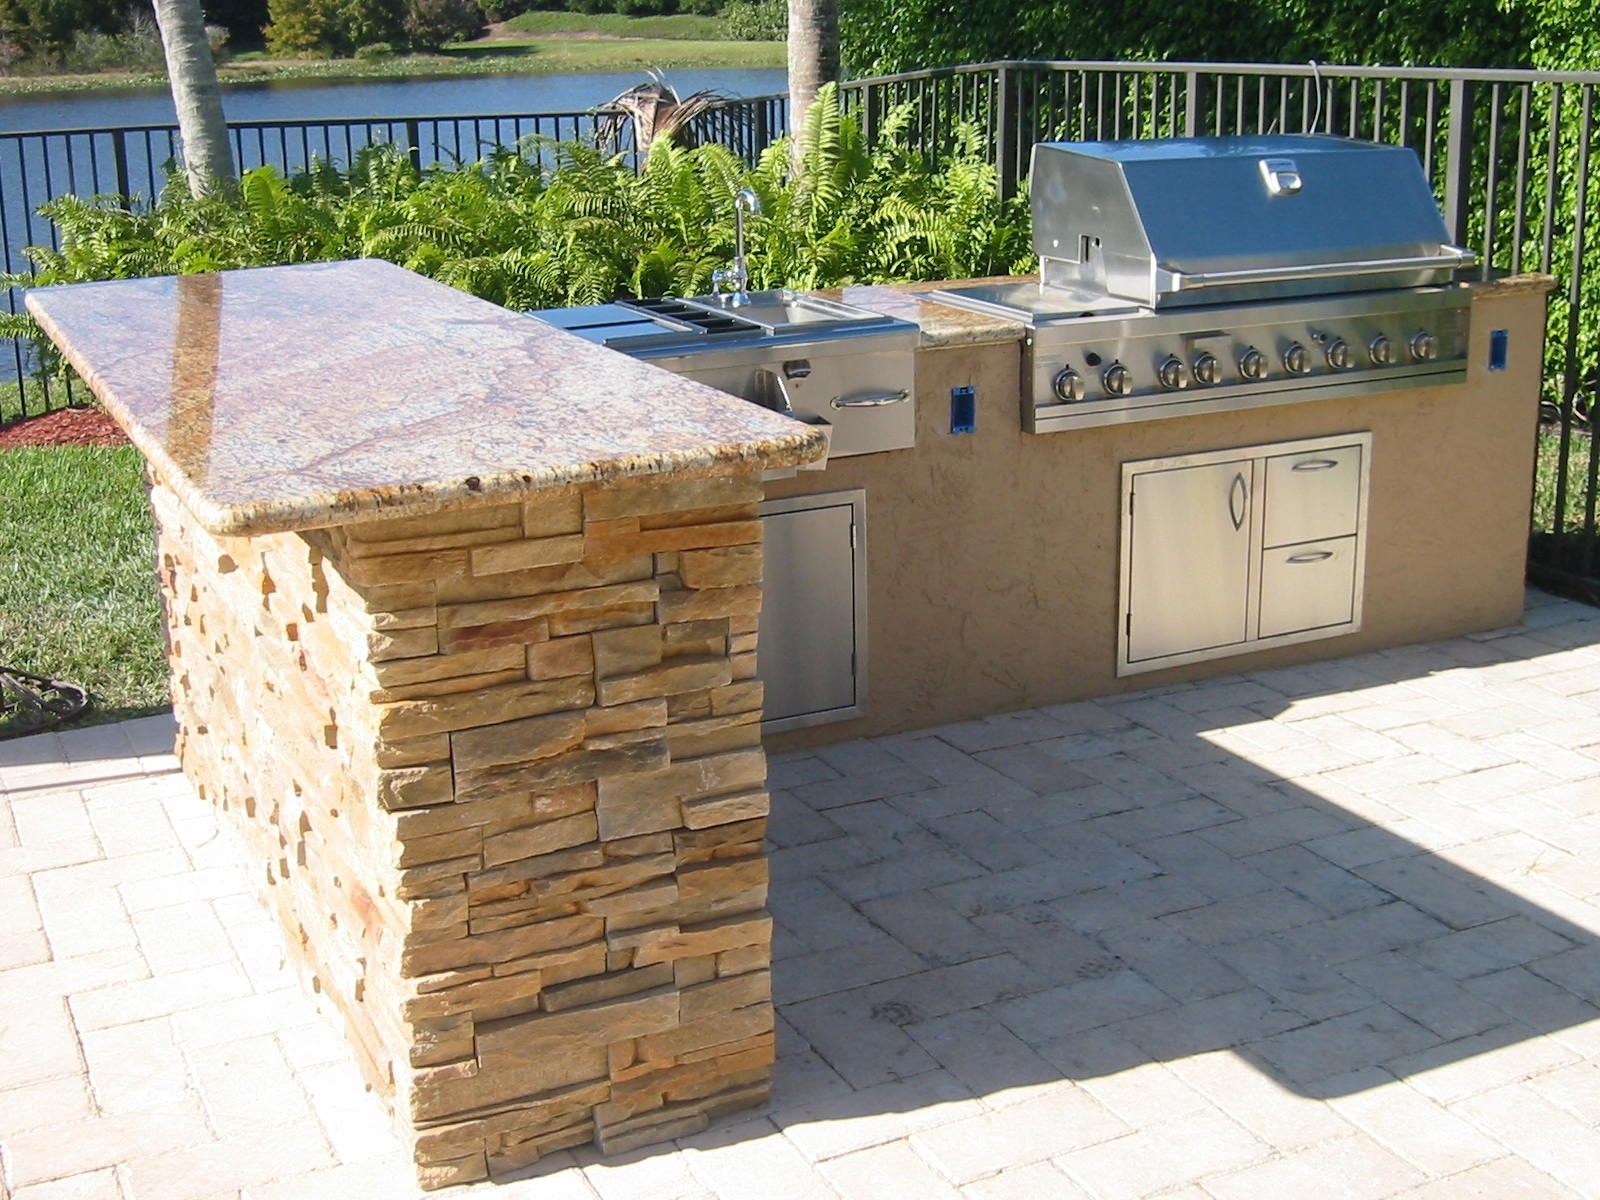 Diy Outdoor Grill Islands With Concrete - Madison Art ... on Diy Patio Grill Island id=44207